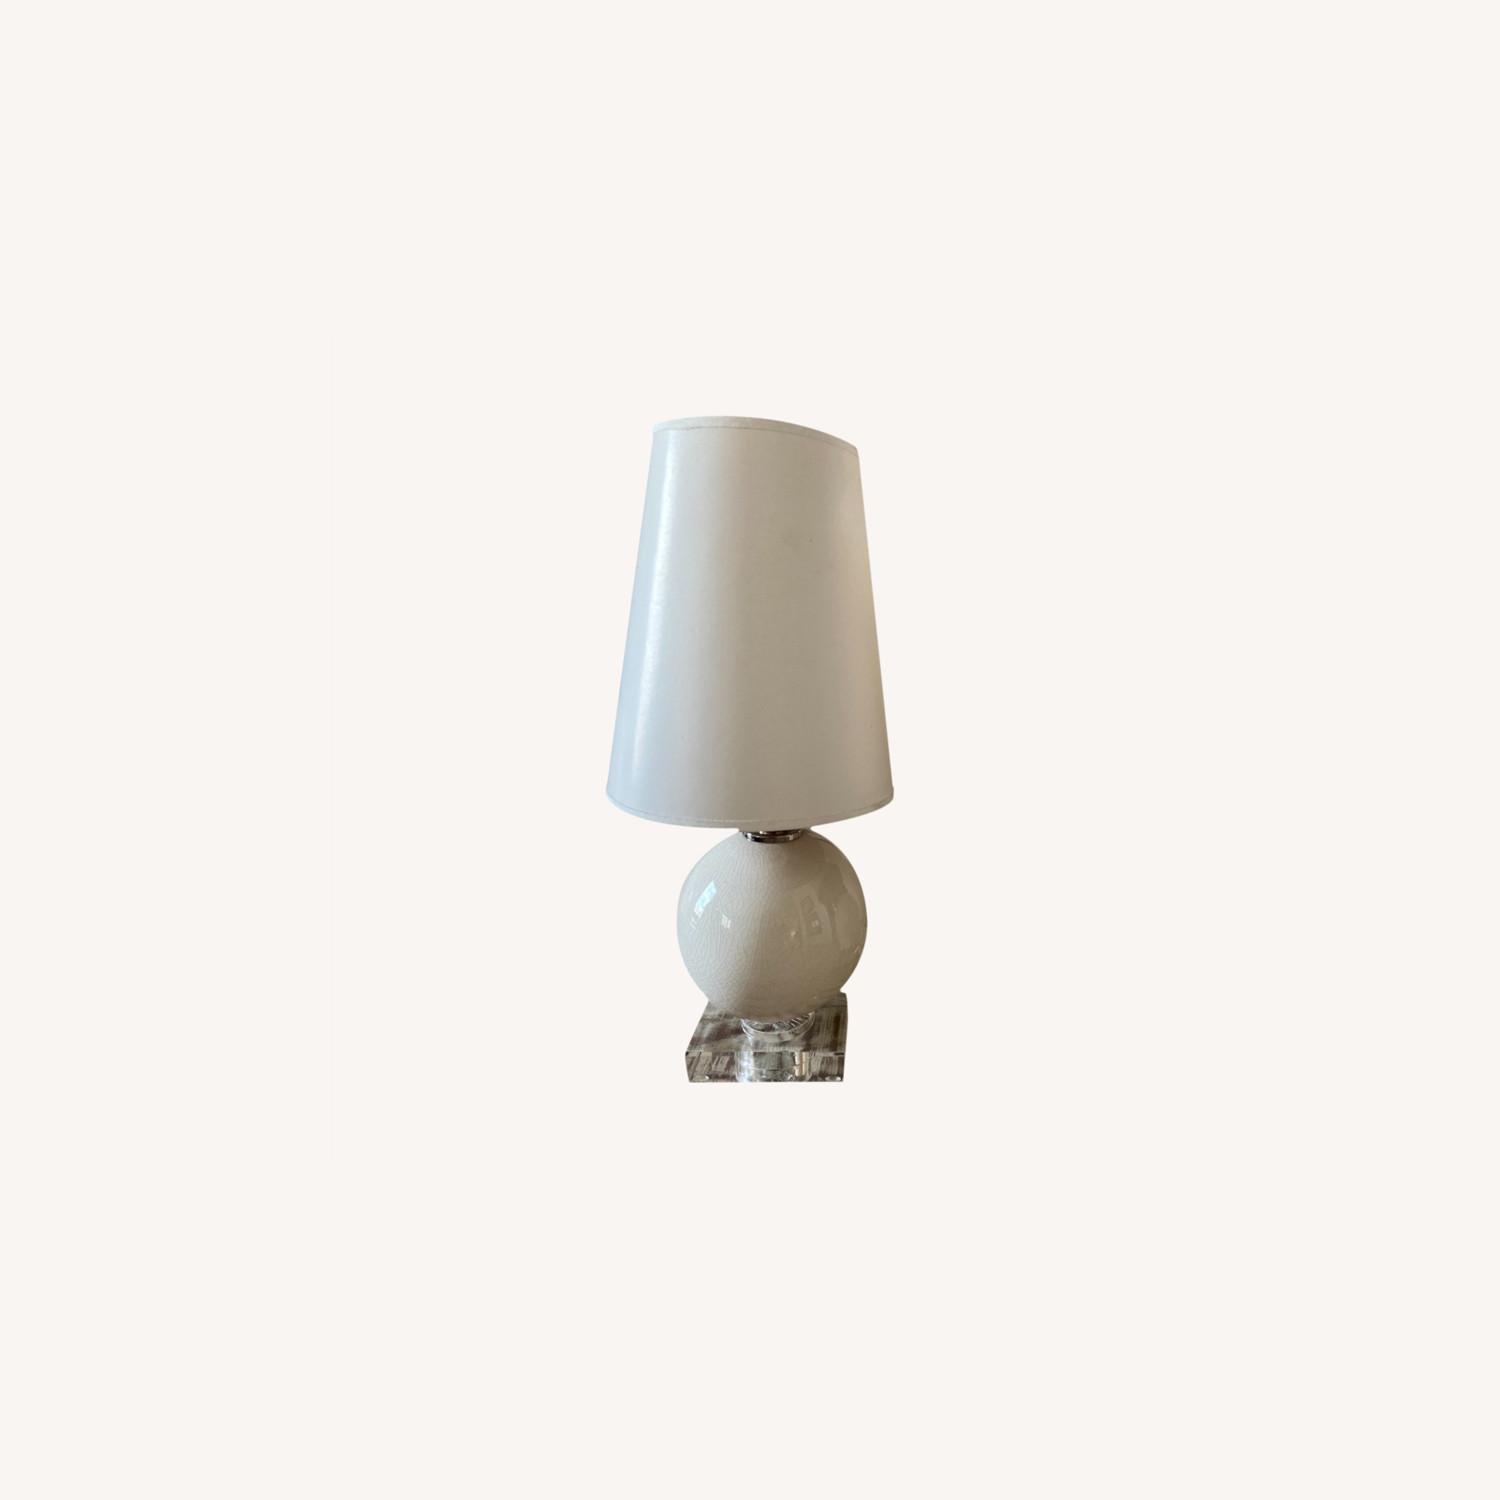 Crackled Glass Table Lamps w Lucite Base - image-0